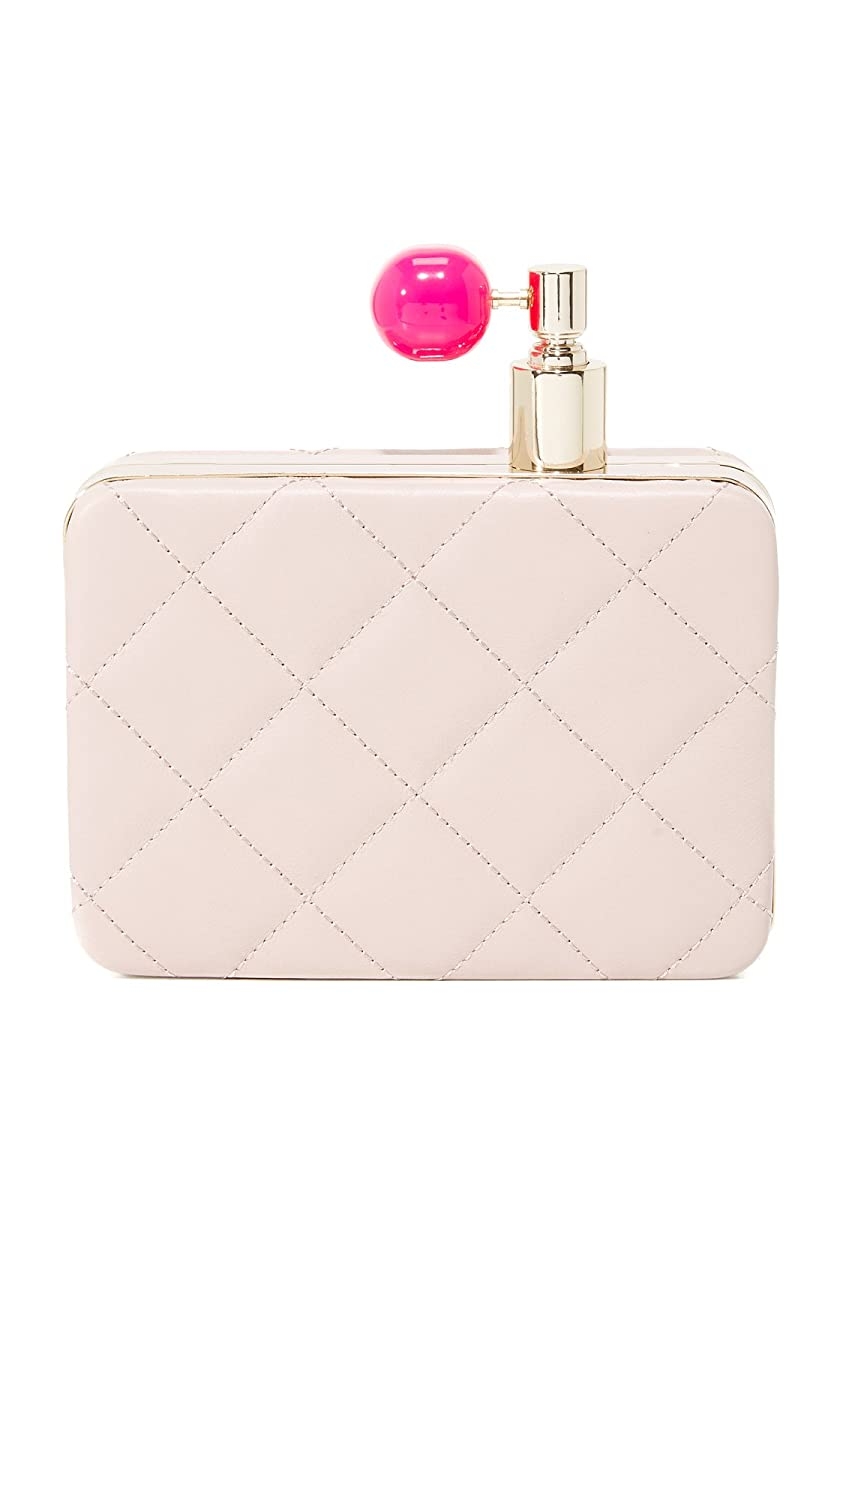 Kate Spade New York Women's Perfume Bottle Clutch